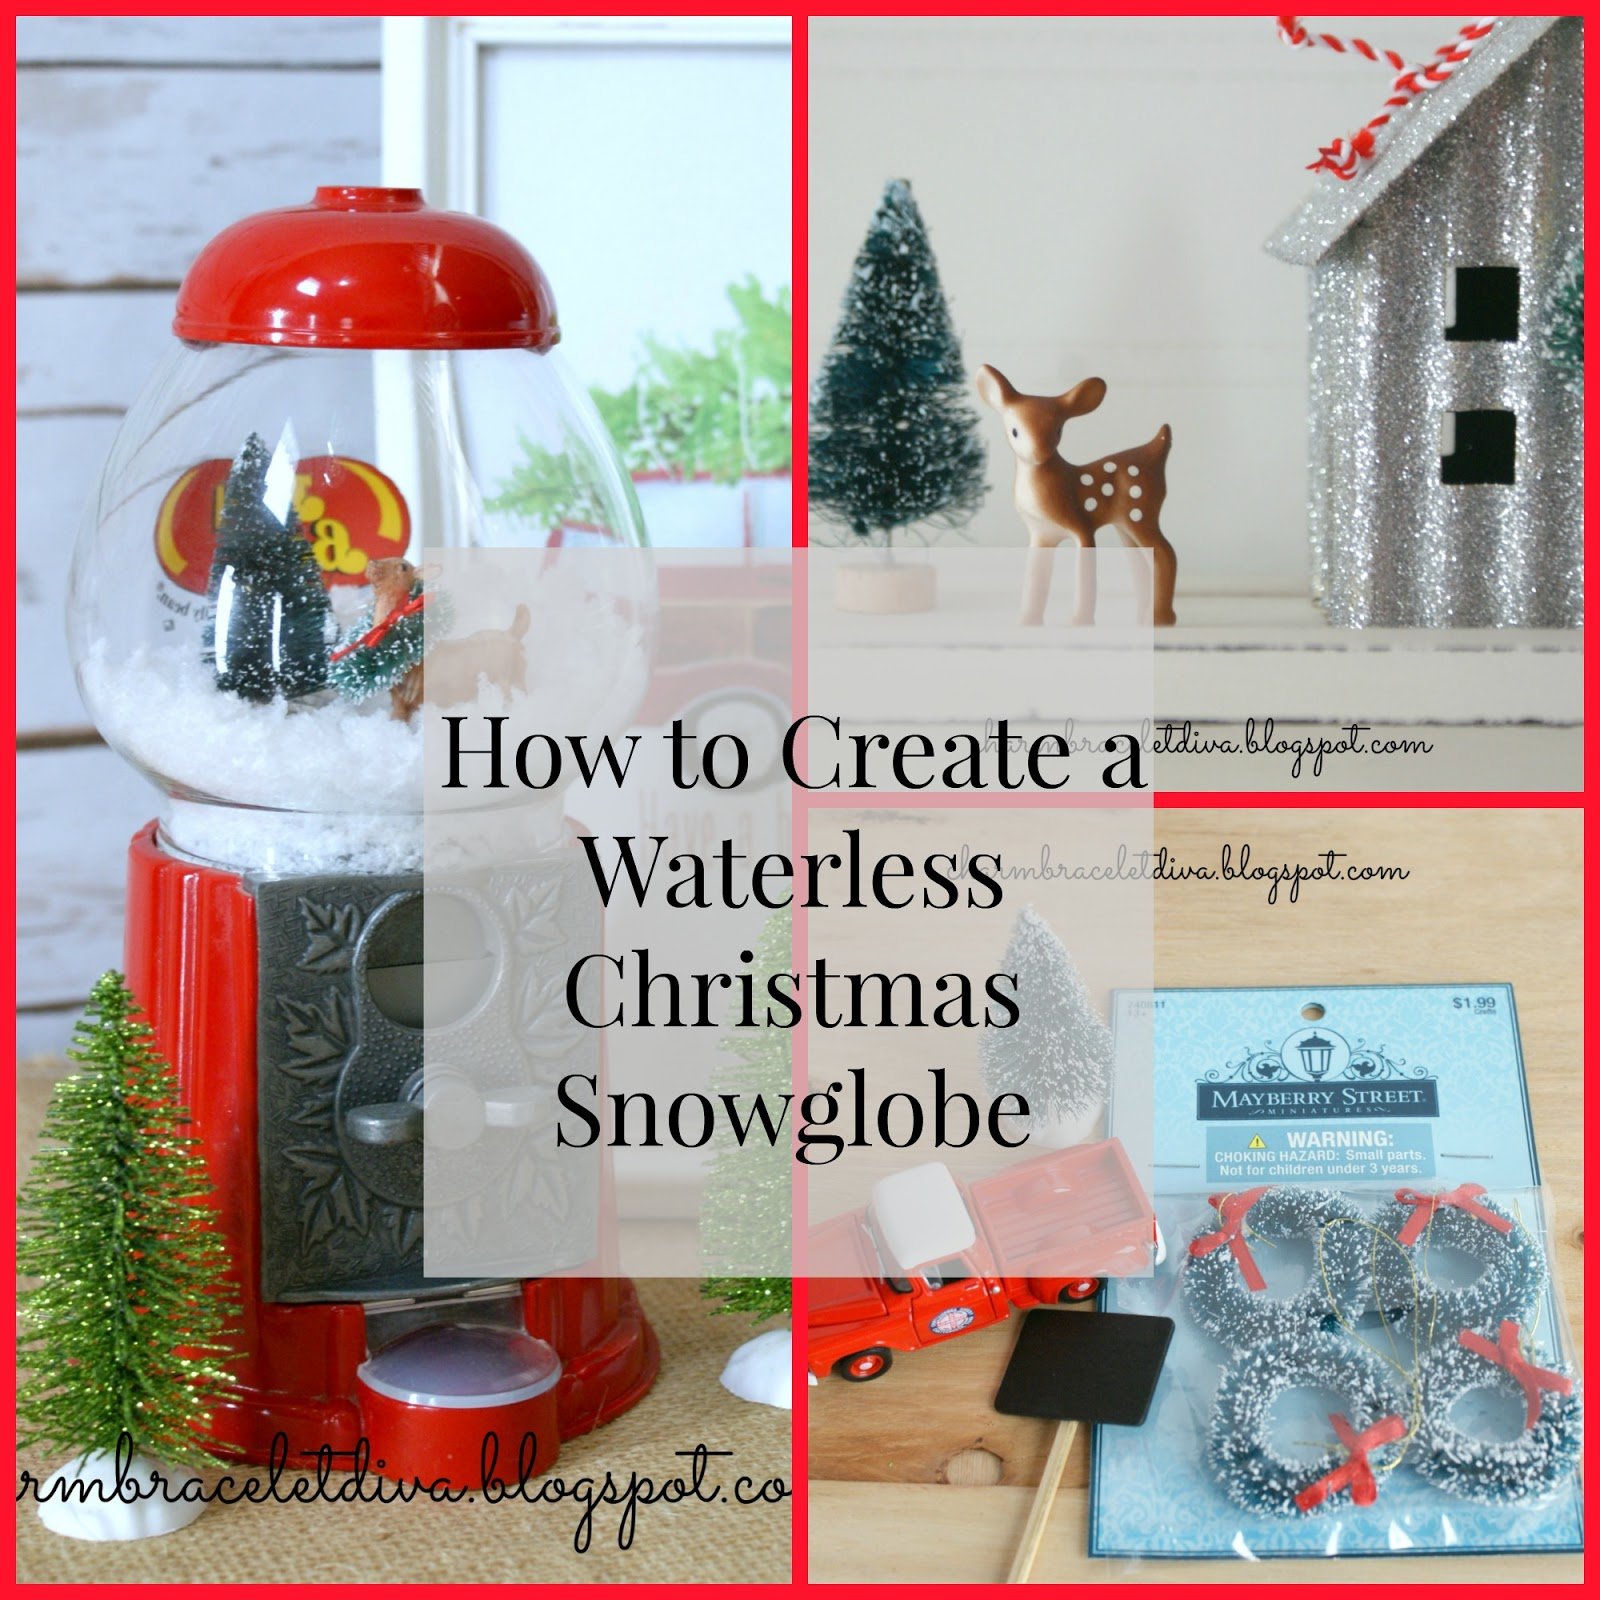 Our Hopeful Home: How To Create A Waterless Christmas Snow Globe: Tips And Tricks